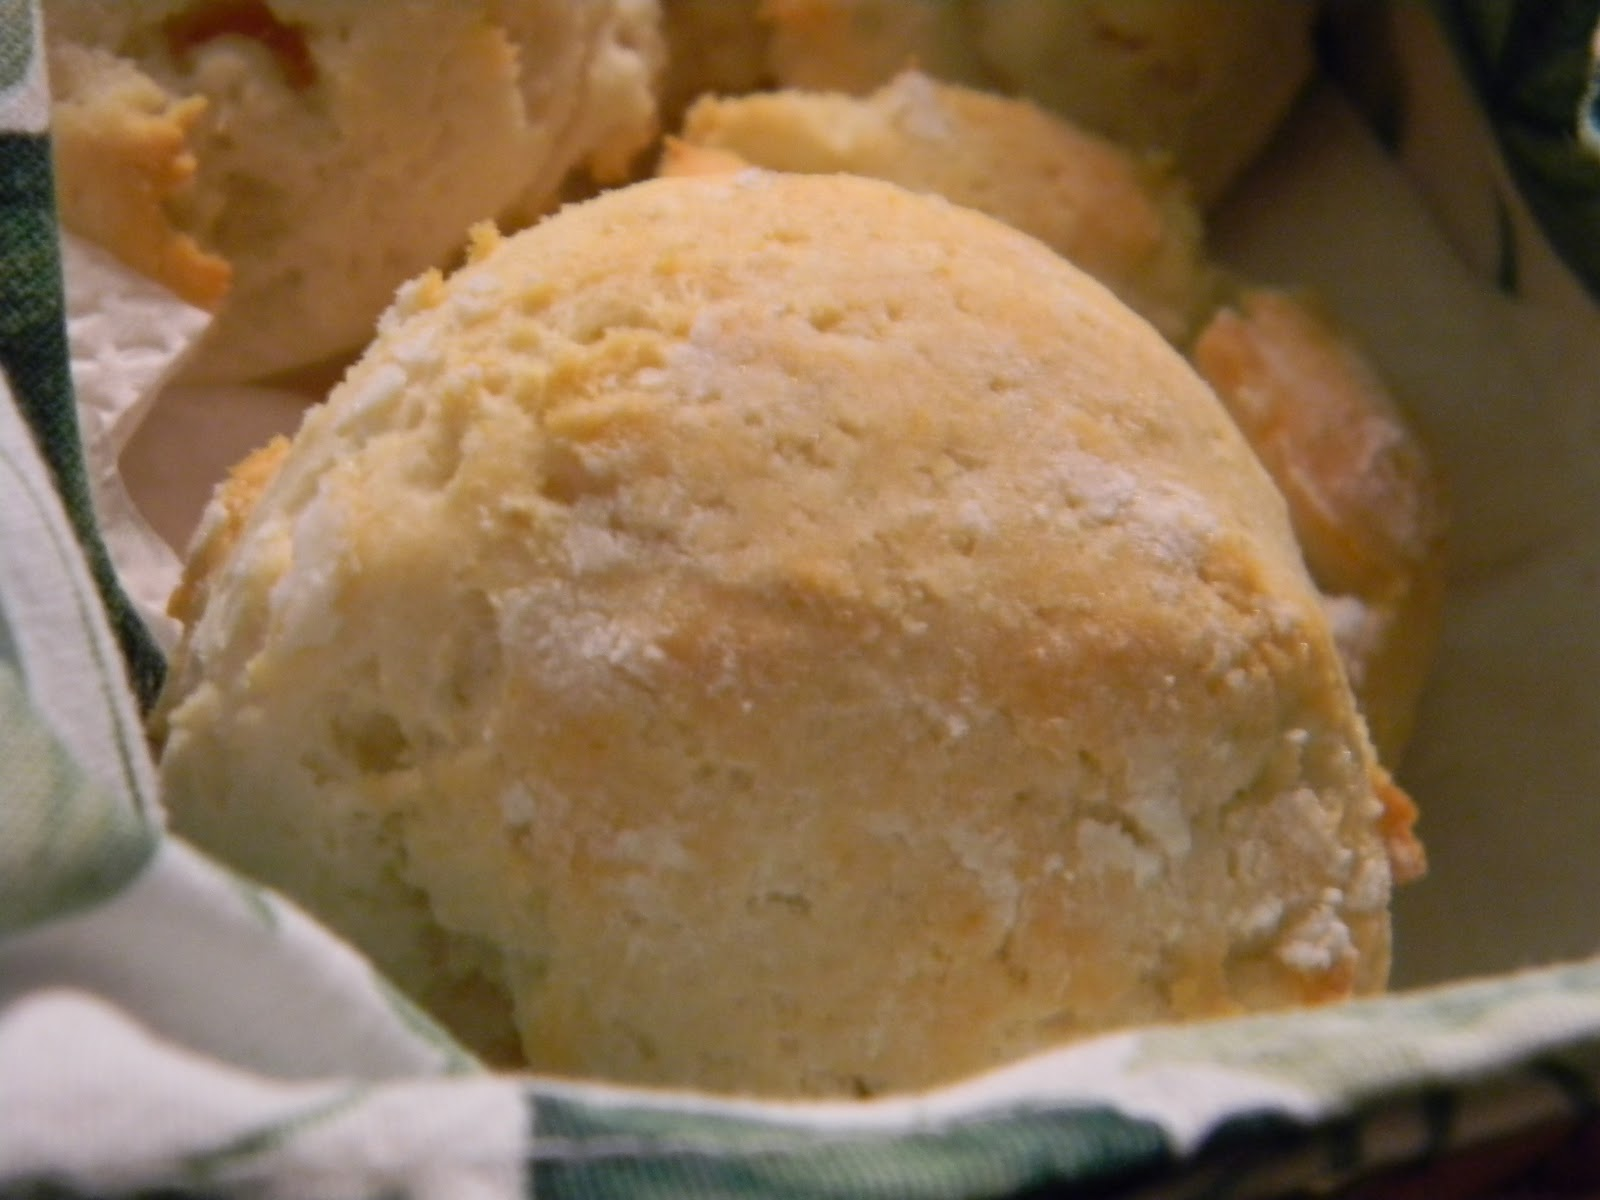 The Gluten-Free Project: Gluten-Free Biscuits